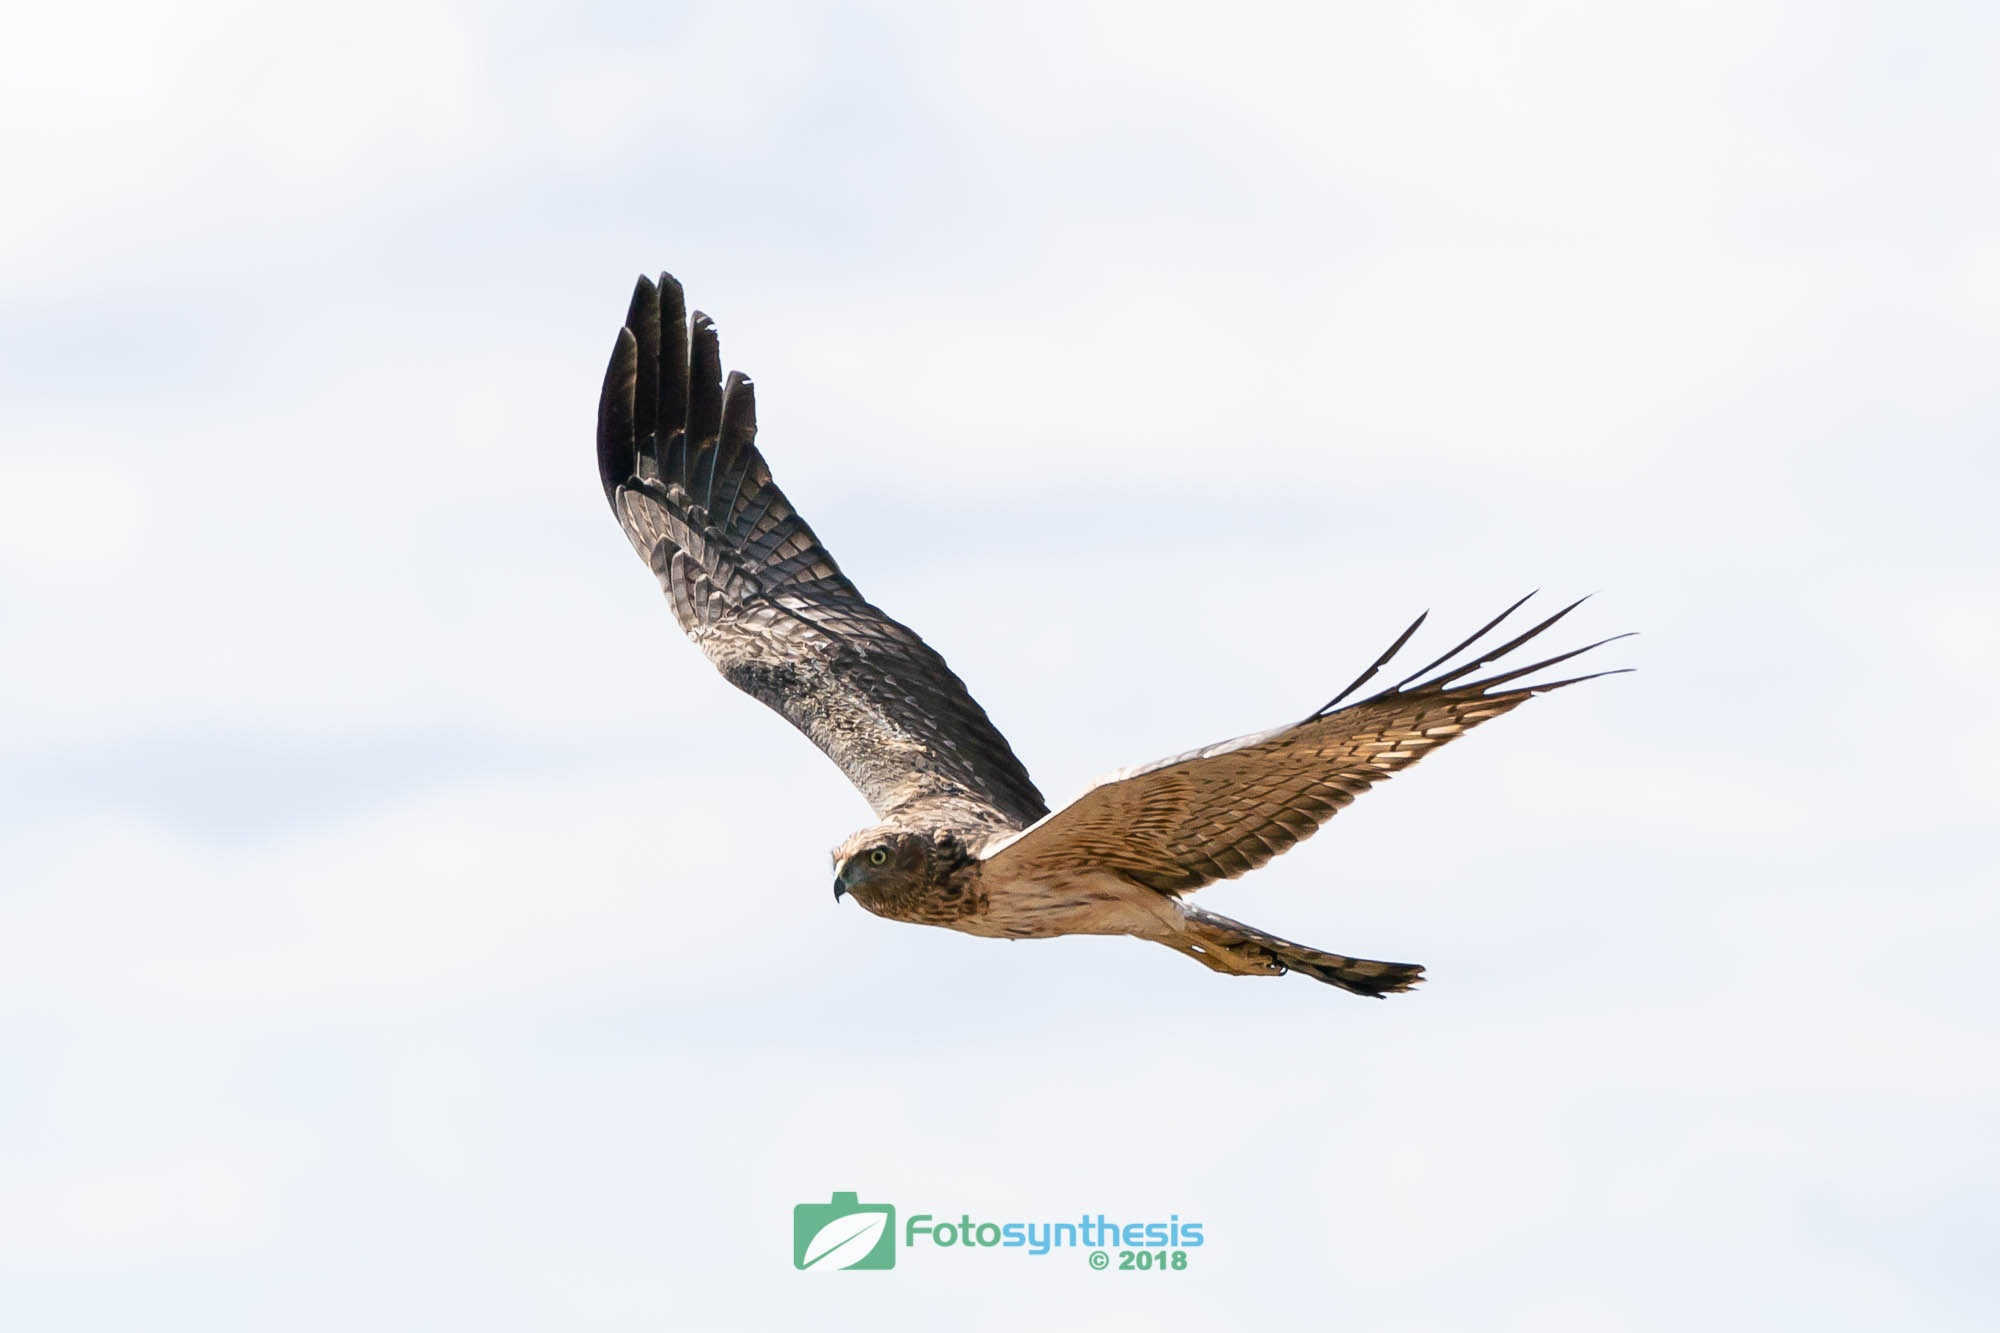 Swamp Harrier Hunting by FotosynthesisAustralia